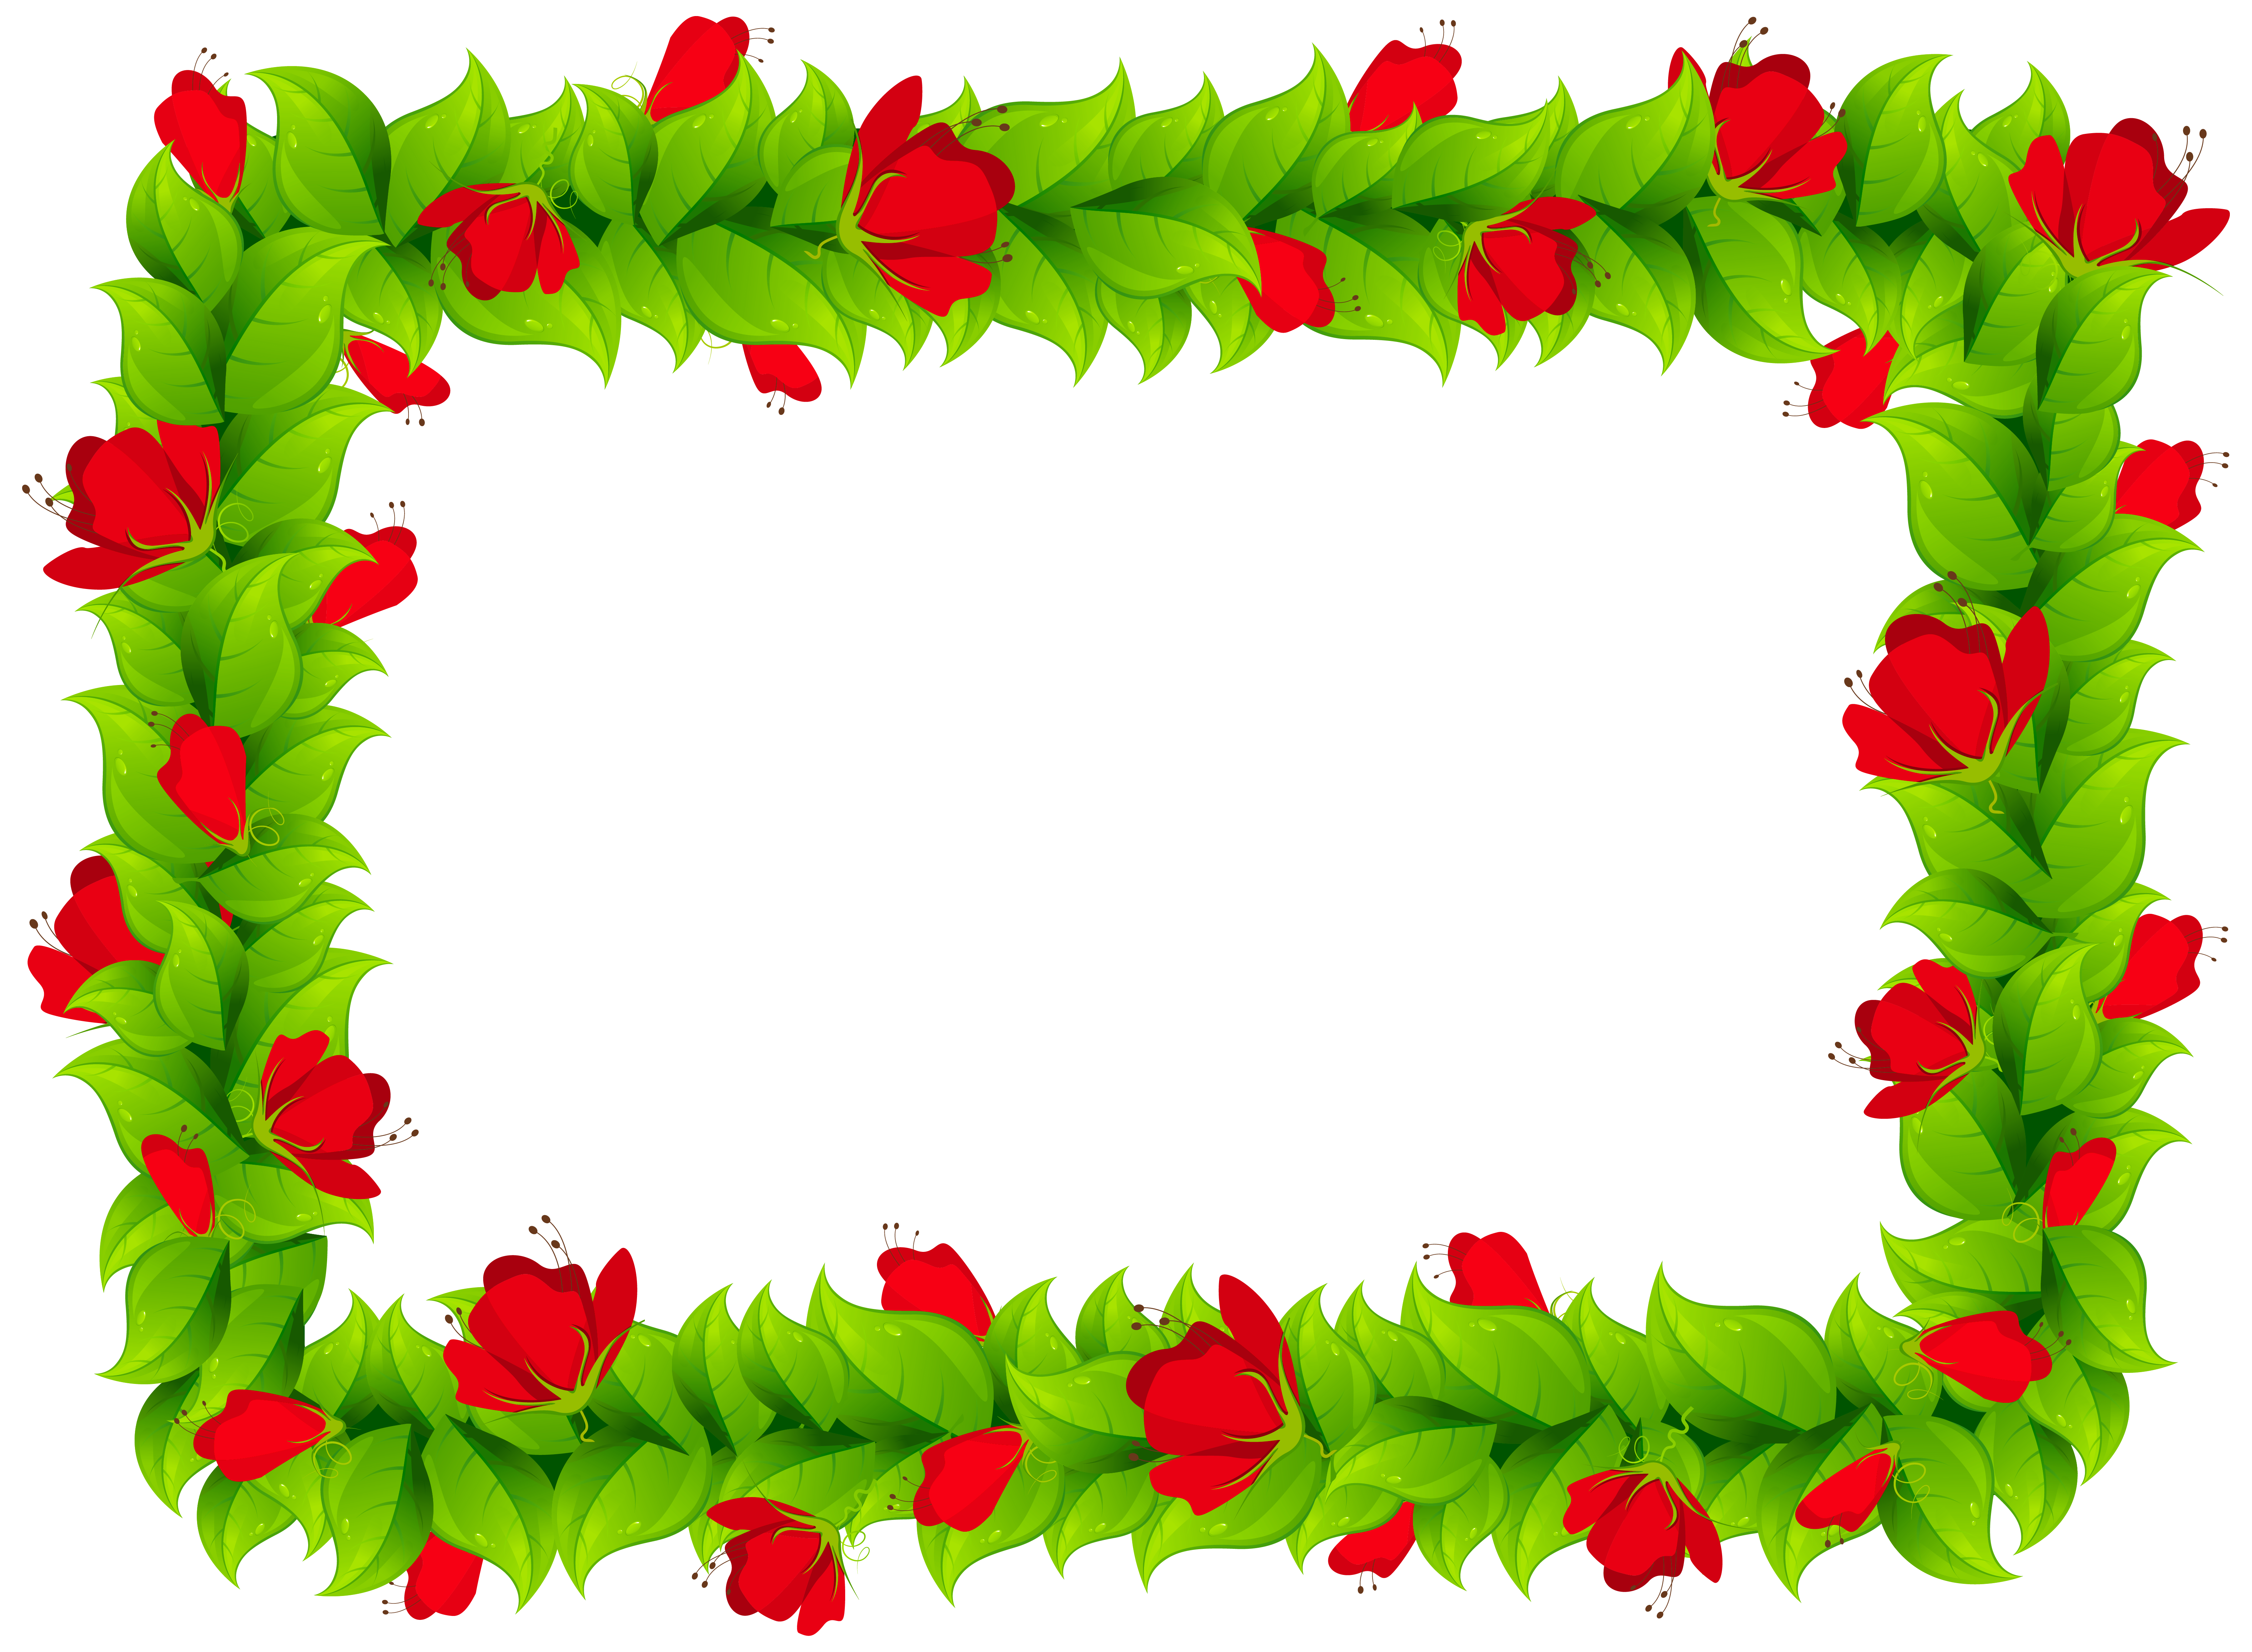 Border clipart png. Floral frame image gallery